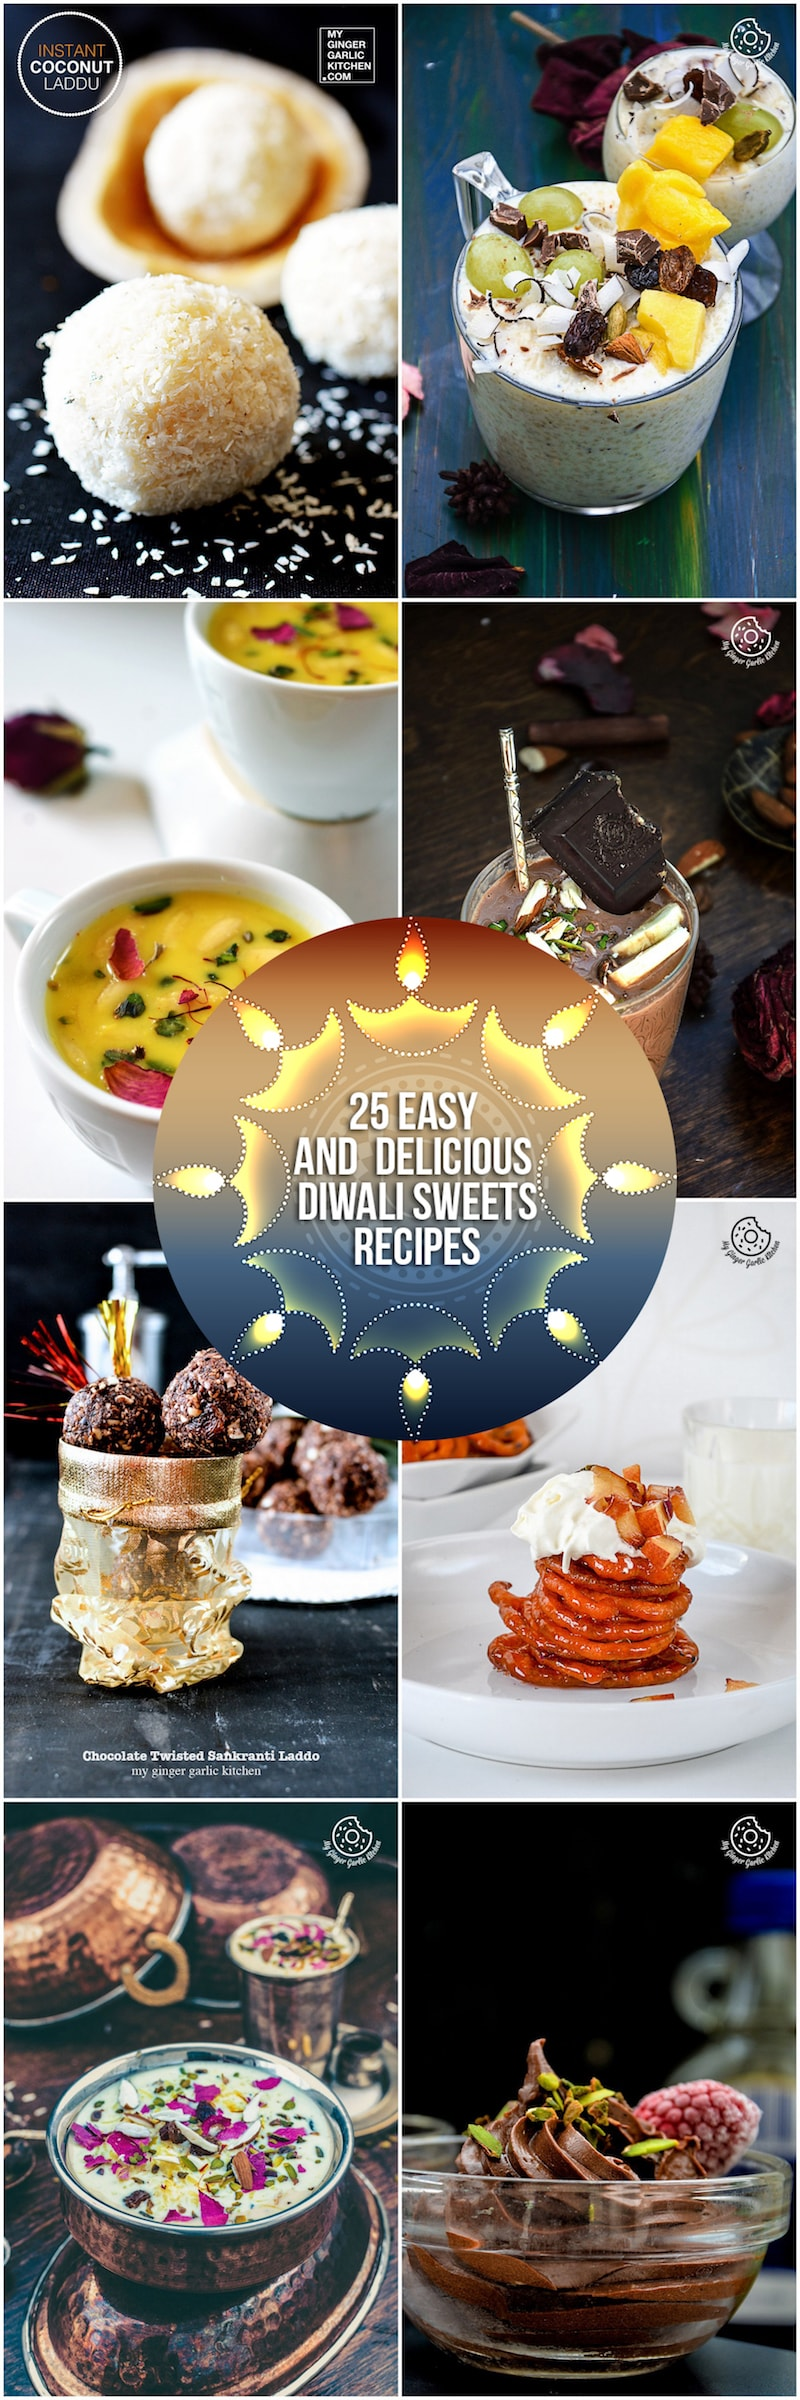 recipes-diwali-sweets-recipes|mygingergarlickitchen.com/ @anupama_dreams